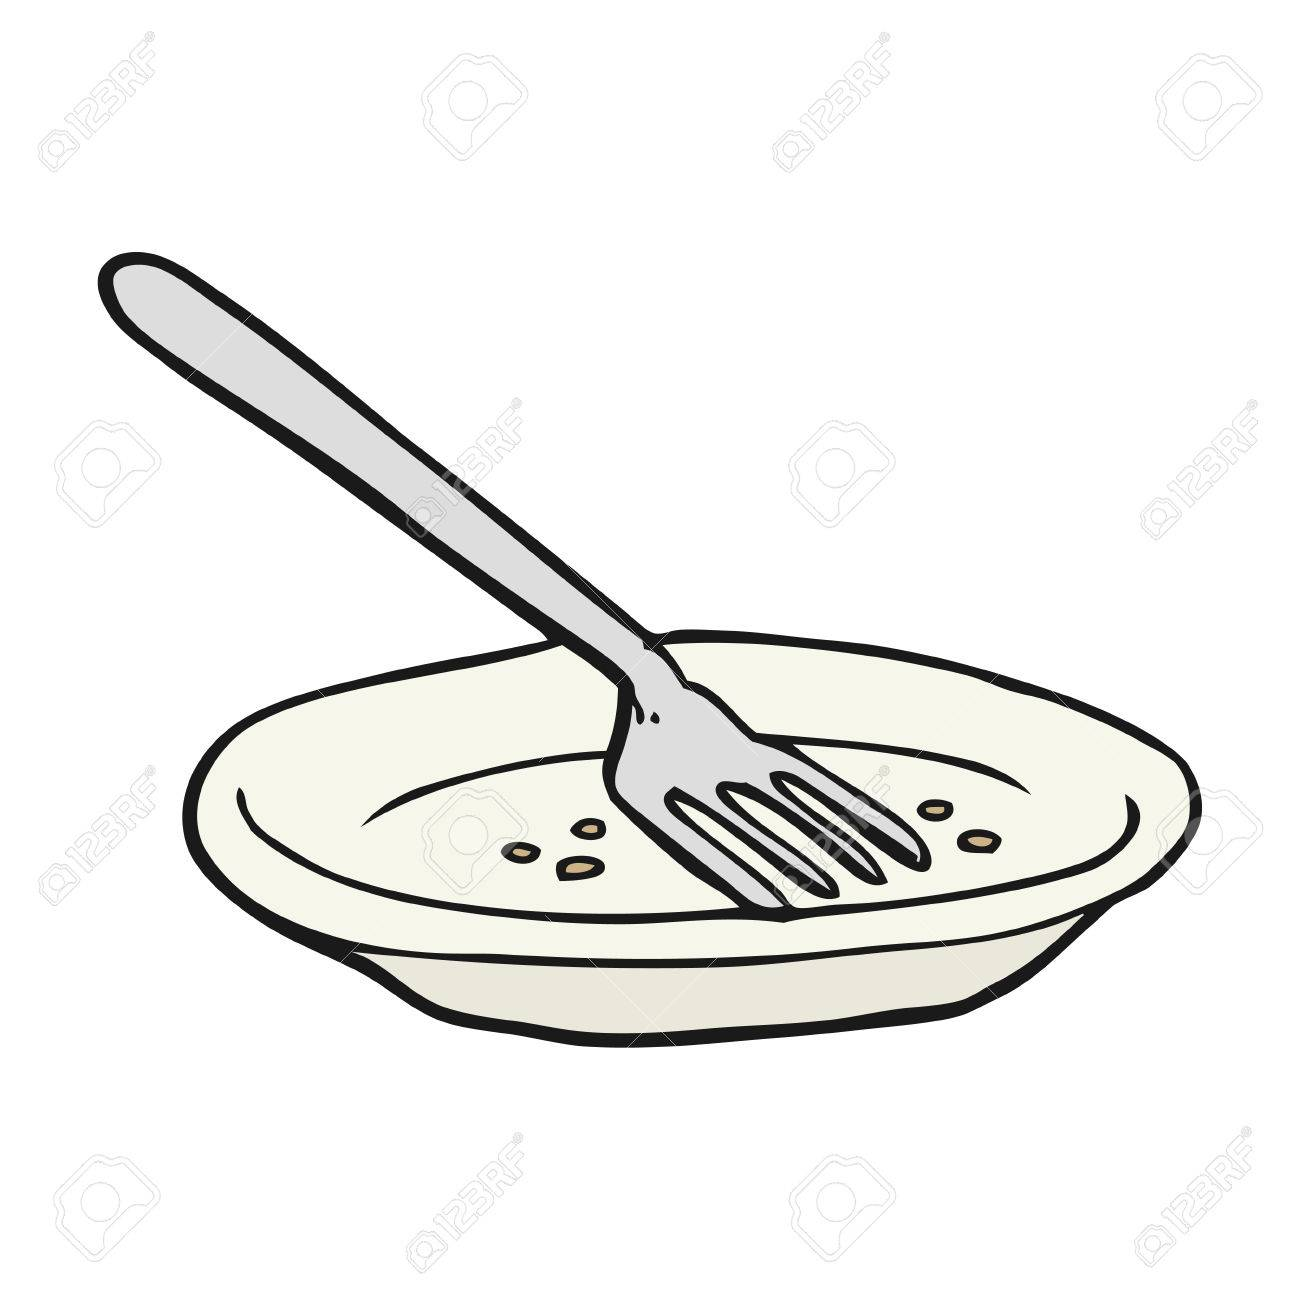 Freehand Drawn Cartoon Empty Plate Royalty Free Cliparts Vectors